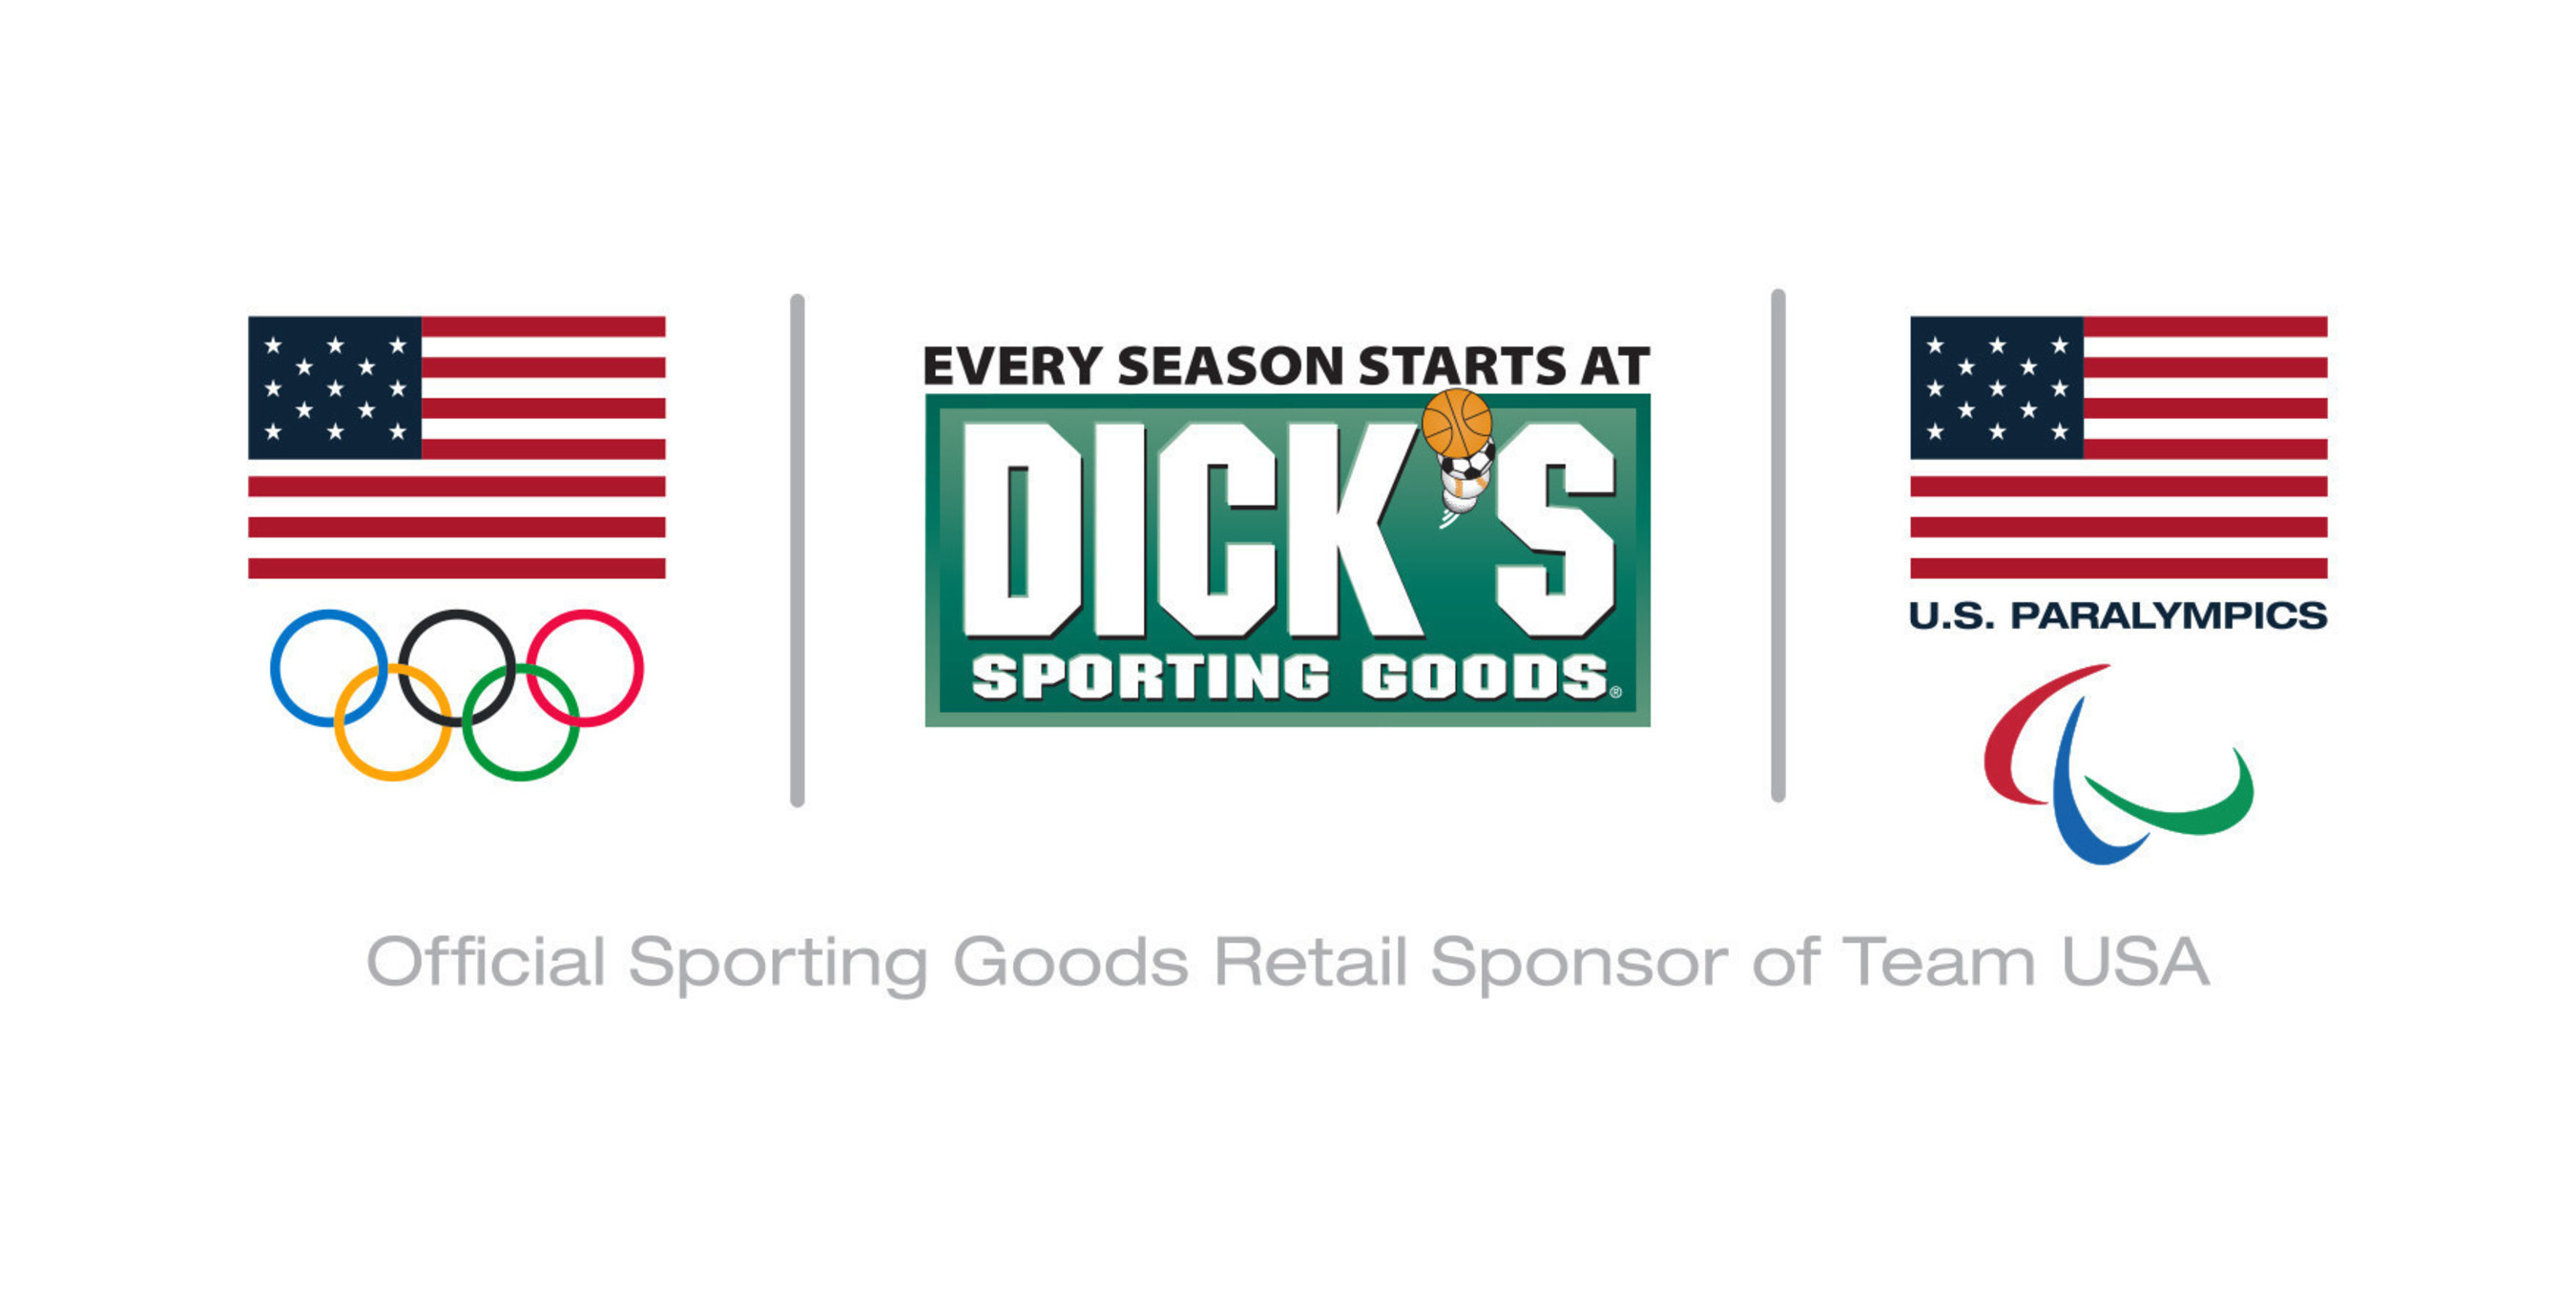 Dick S Sporting Goods Announces Roster Of More Than 180 Team Usa